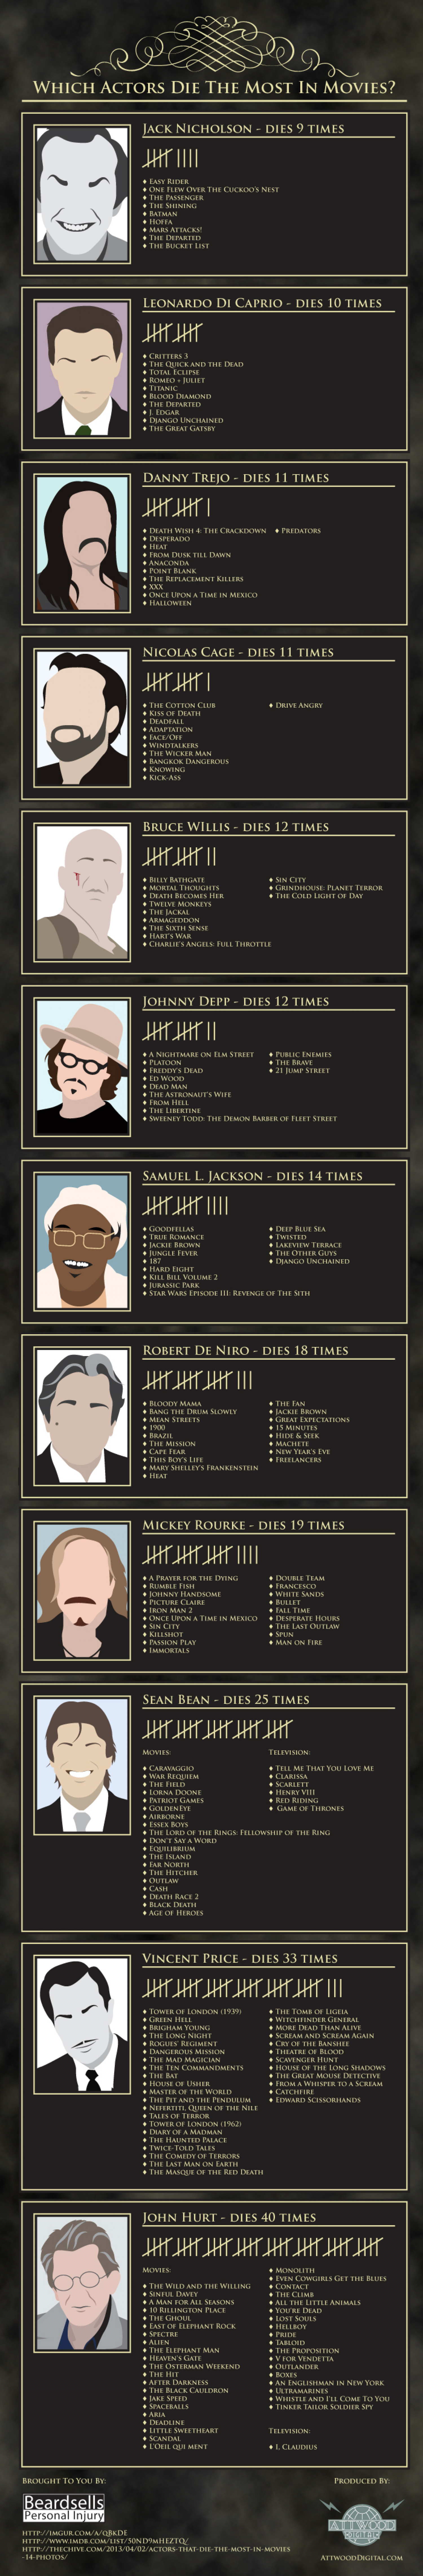 Which Actors Die The Most In Movies? Infographic